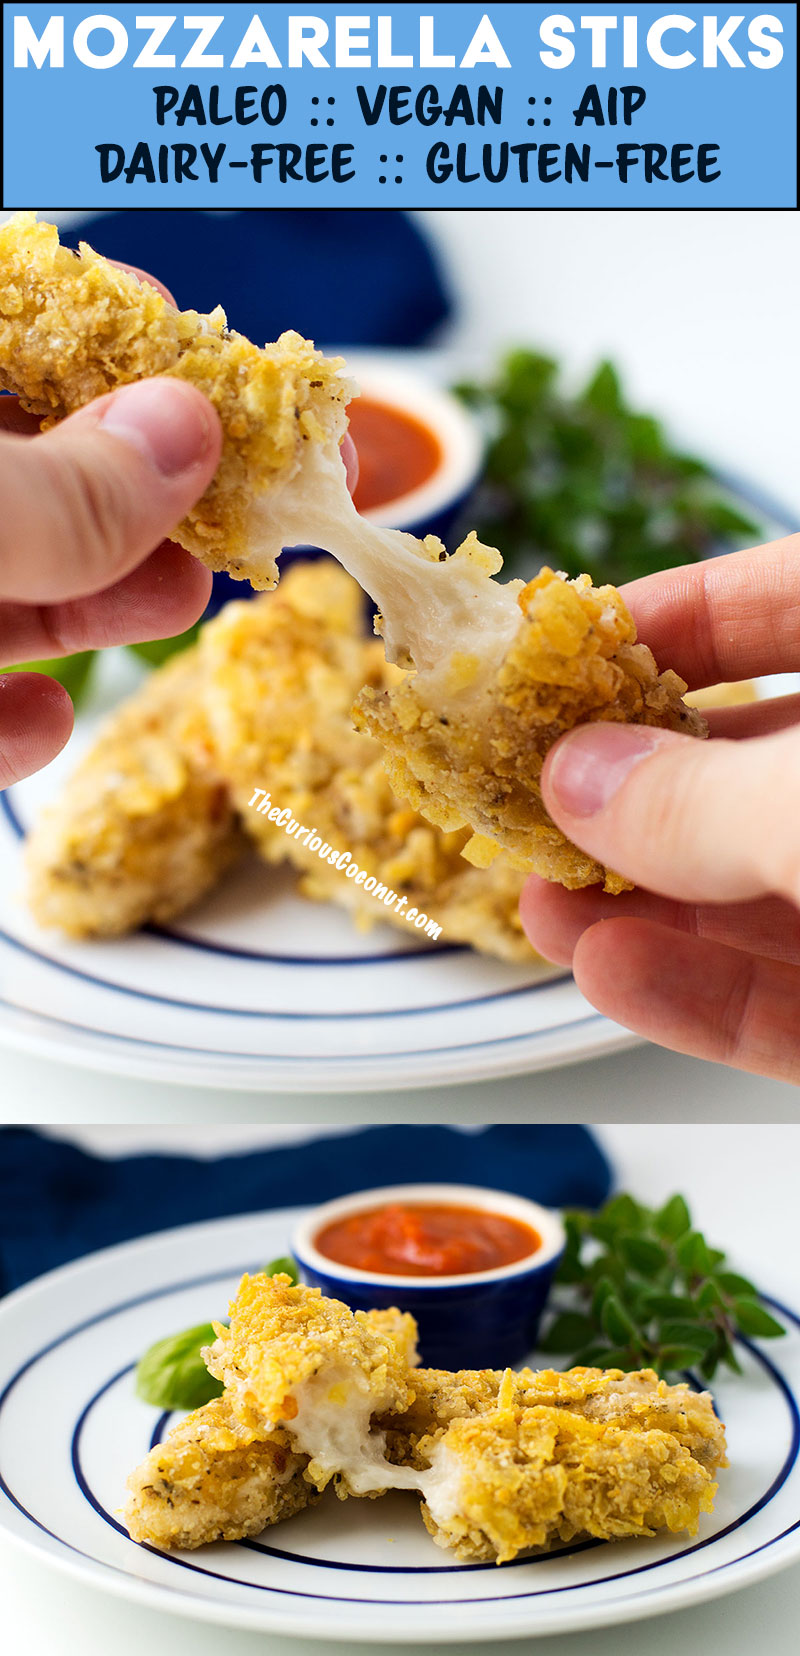 Mozzarella sticks with tapioca cheese that melts and stretches! #Paleo and #Vegan and even suitable for the #AIP! This recipe is easy and delicious. Nut-free, Gluten-free, Grain-free, Dairy-free //   TheCuriousCoconut  .  com